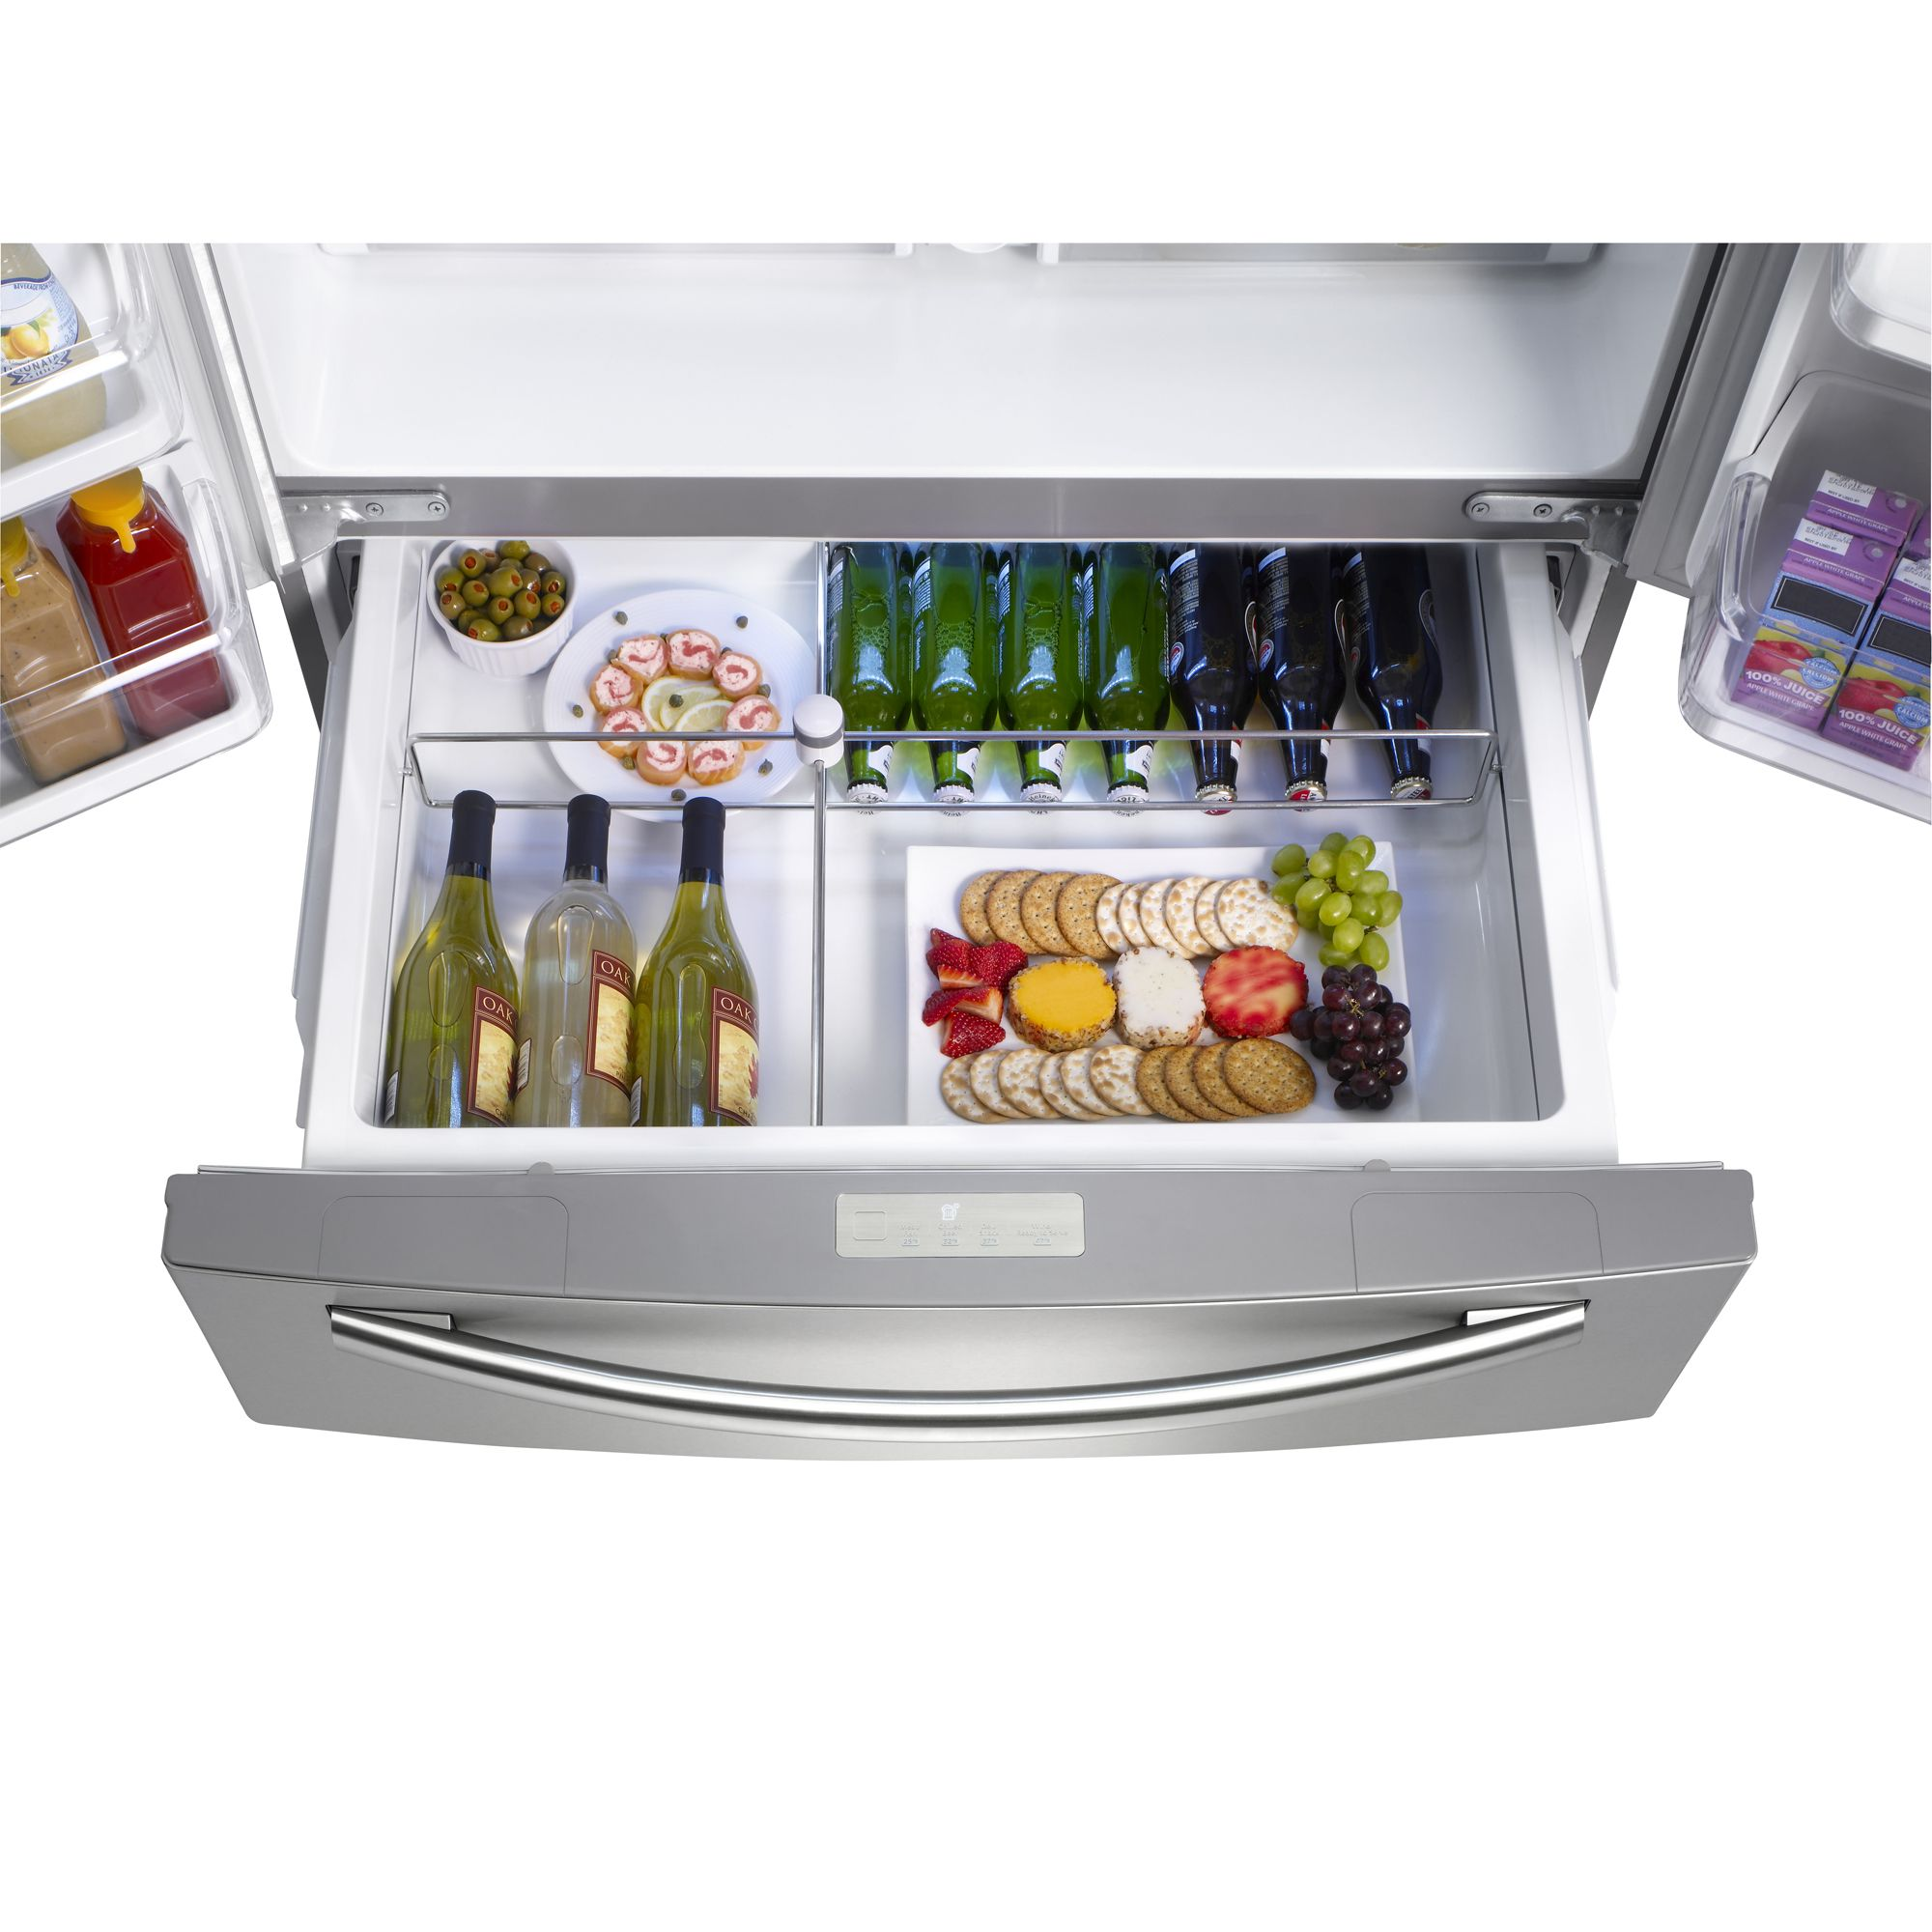 Samsung 28 cu. ft. French-Door Refrigerator w/ Counter-Height Drawer - Stainless Steel